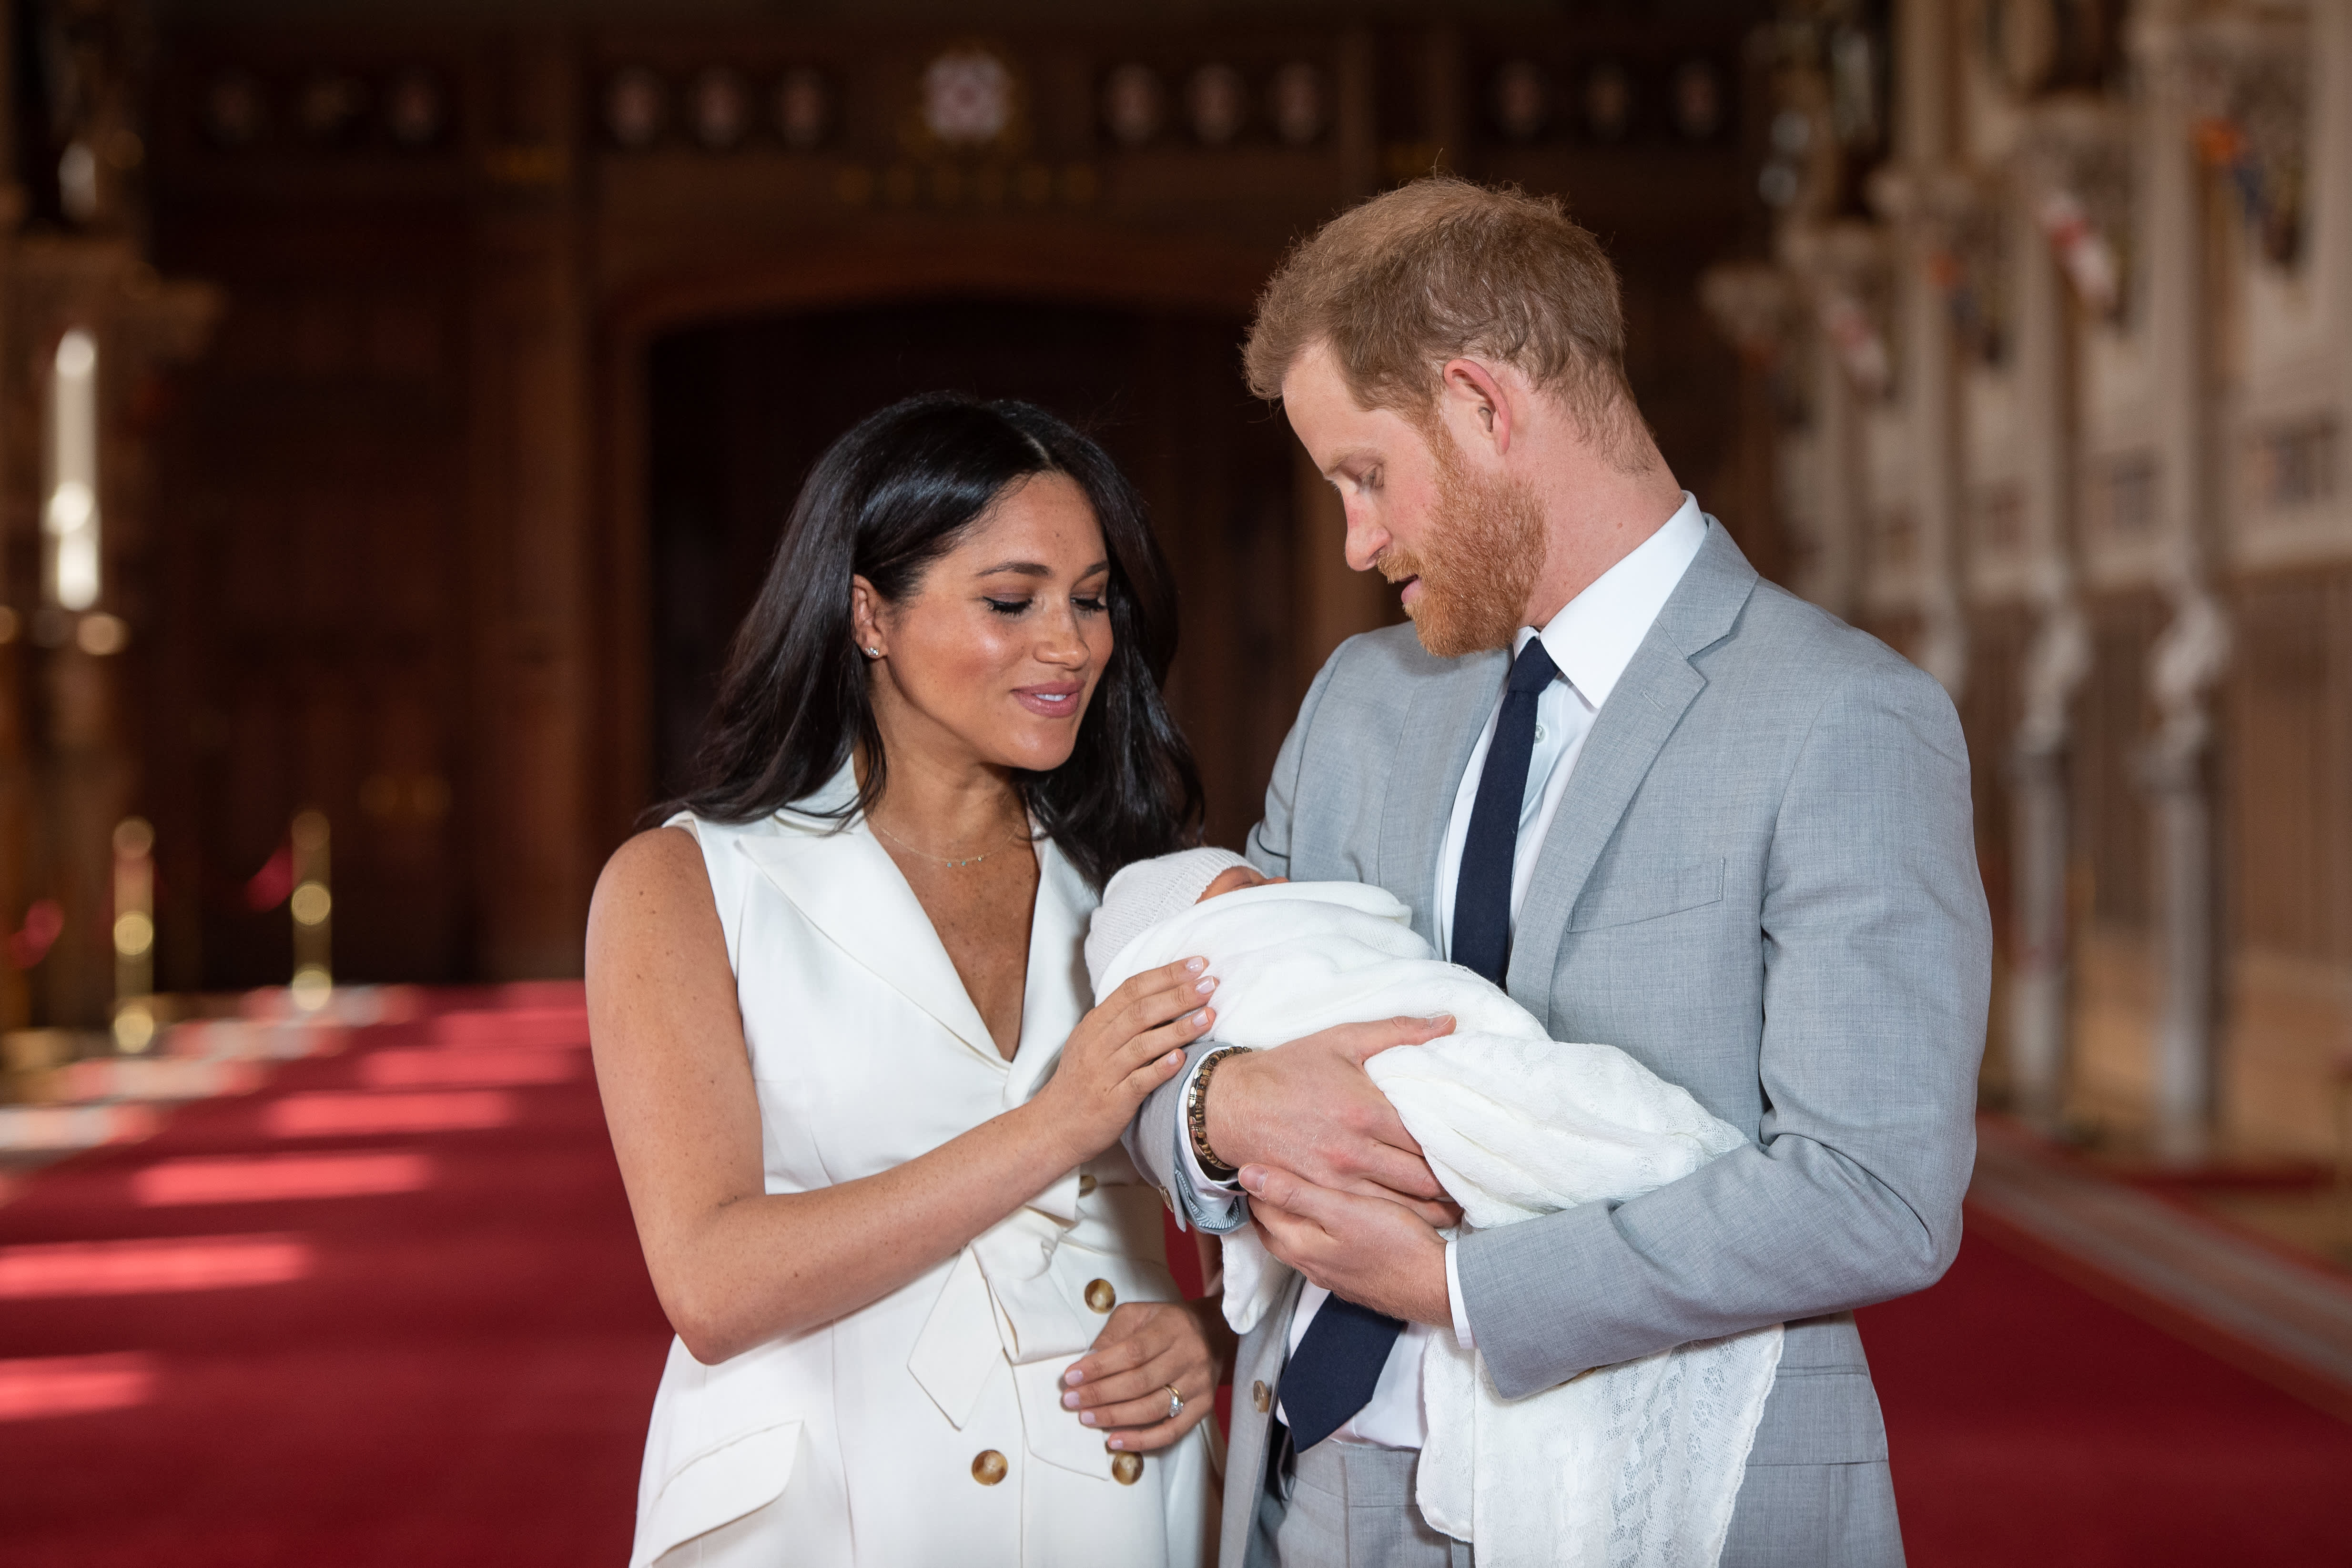 Is the royal baby here now